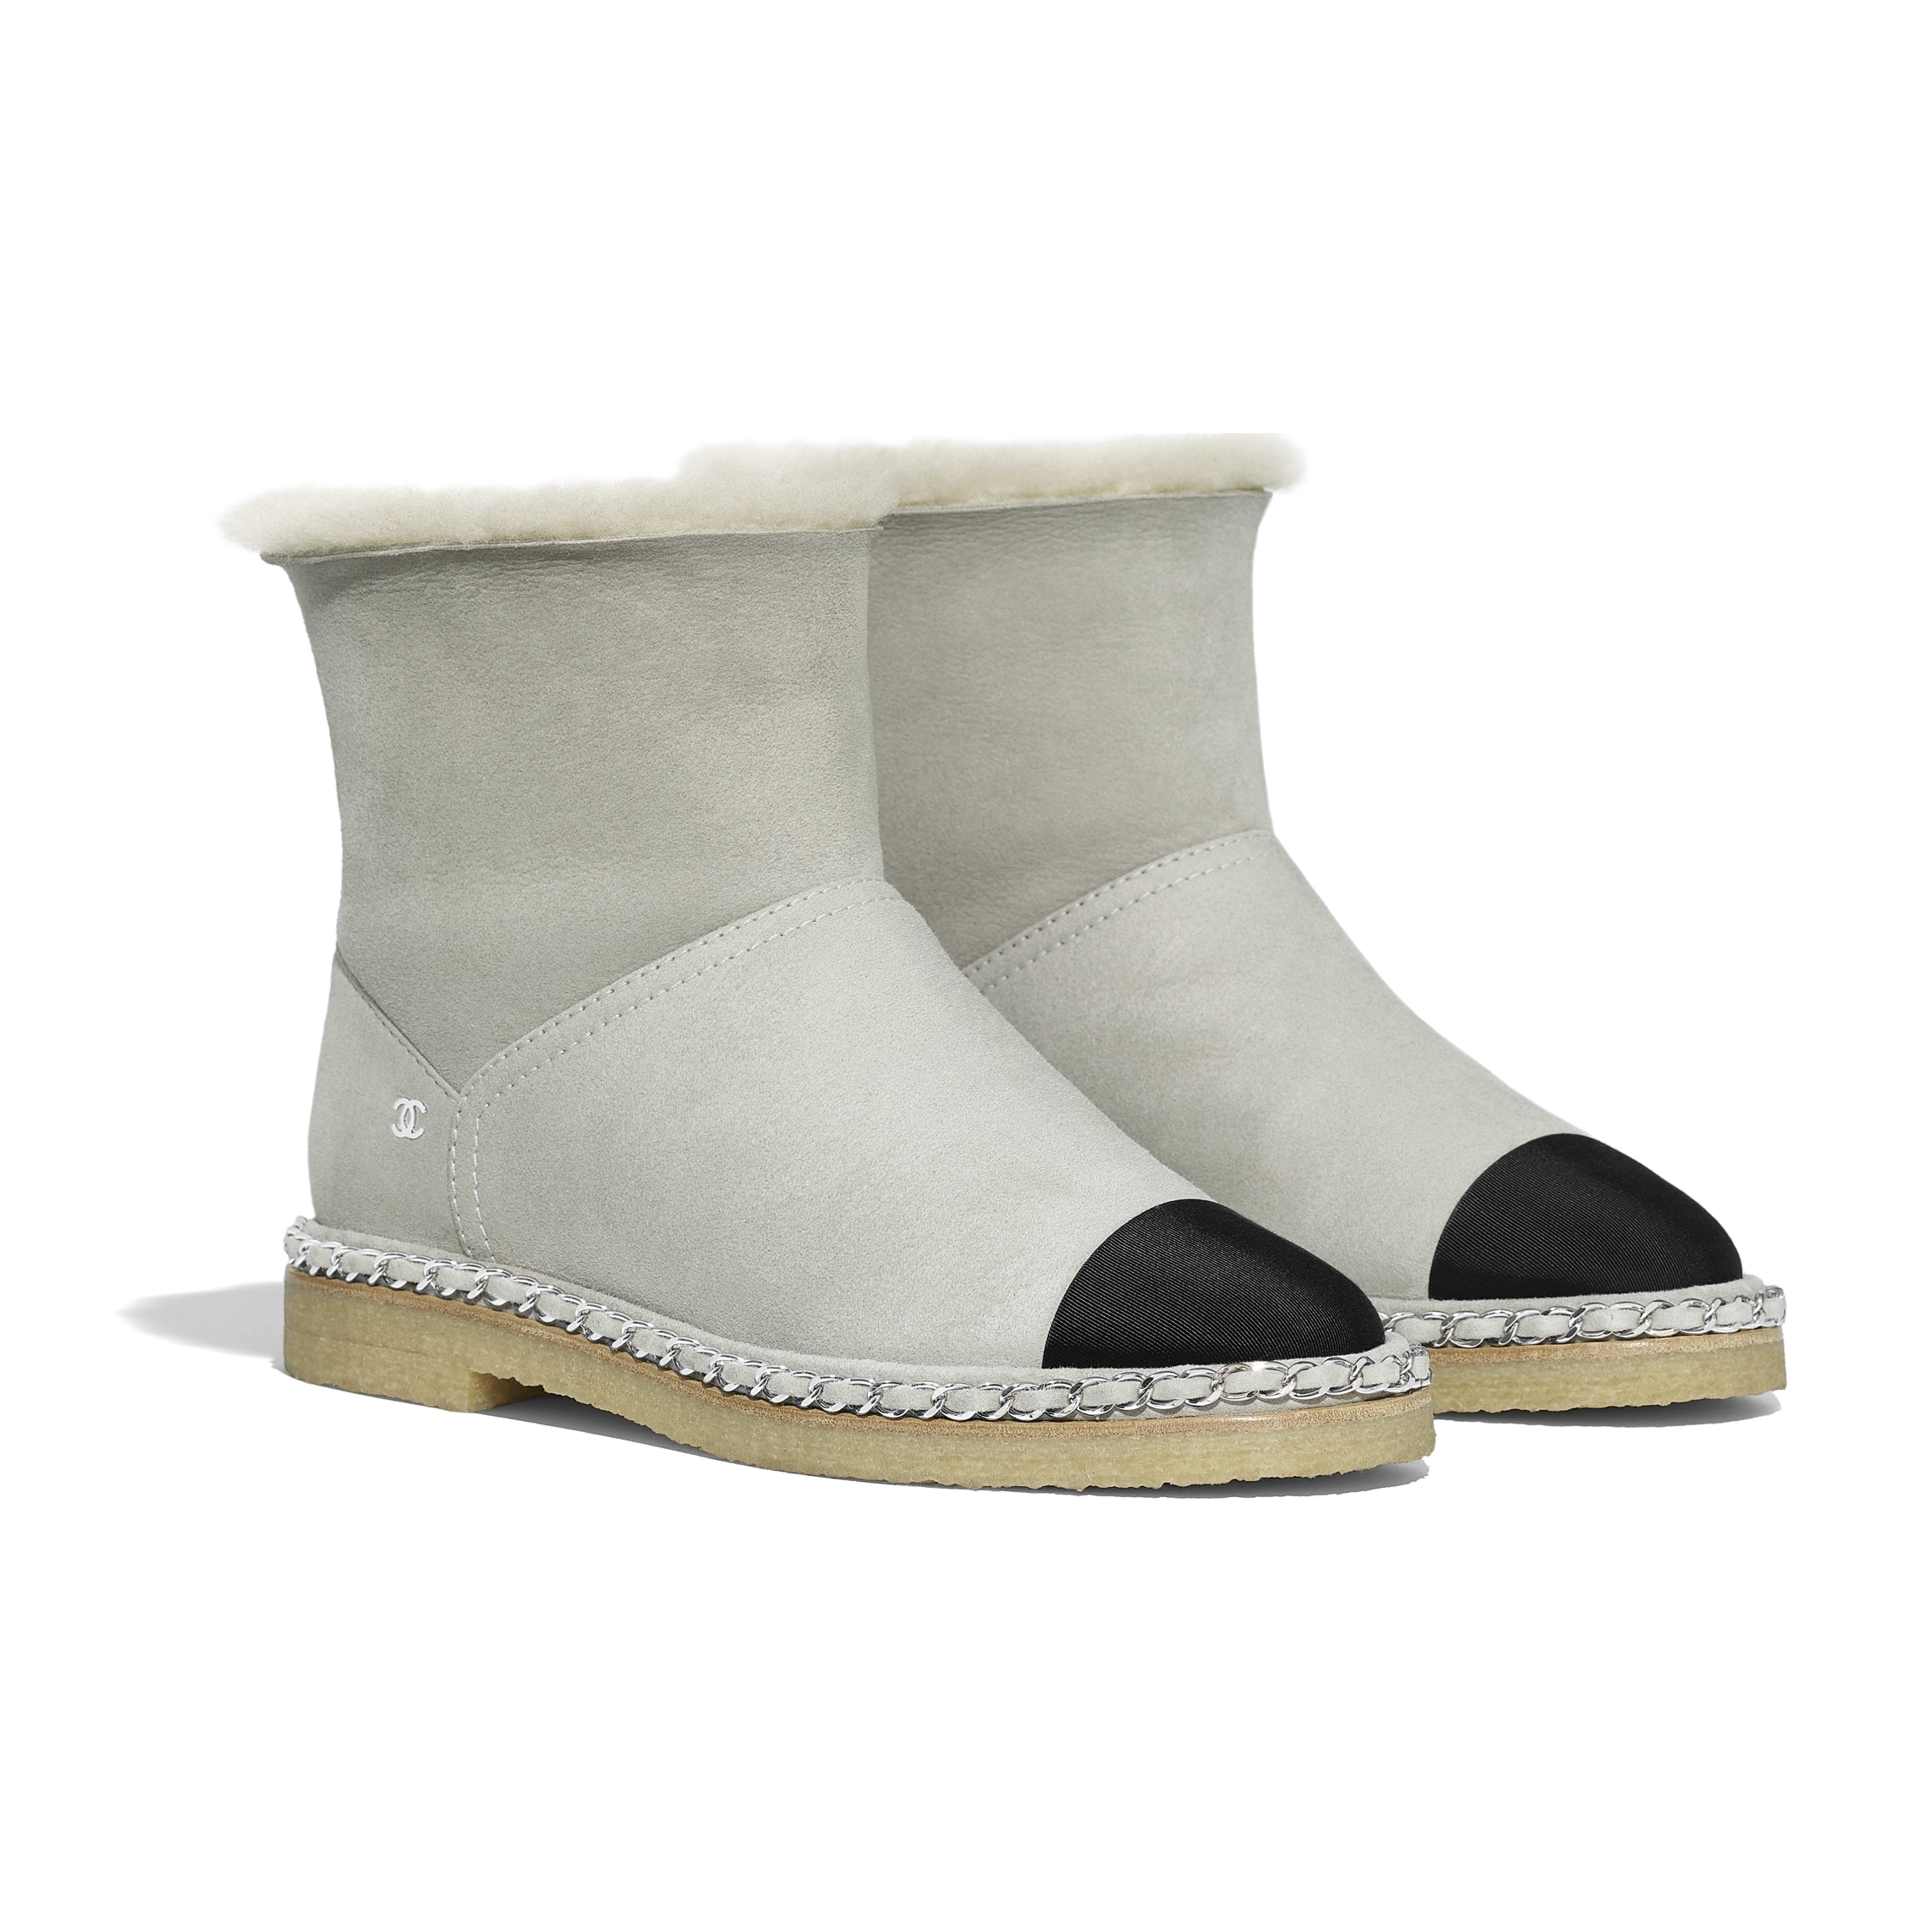 Ankle Boots - Gray & Black - Shearling Lambskin & Grosgrain - Alternative view - see full sized version